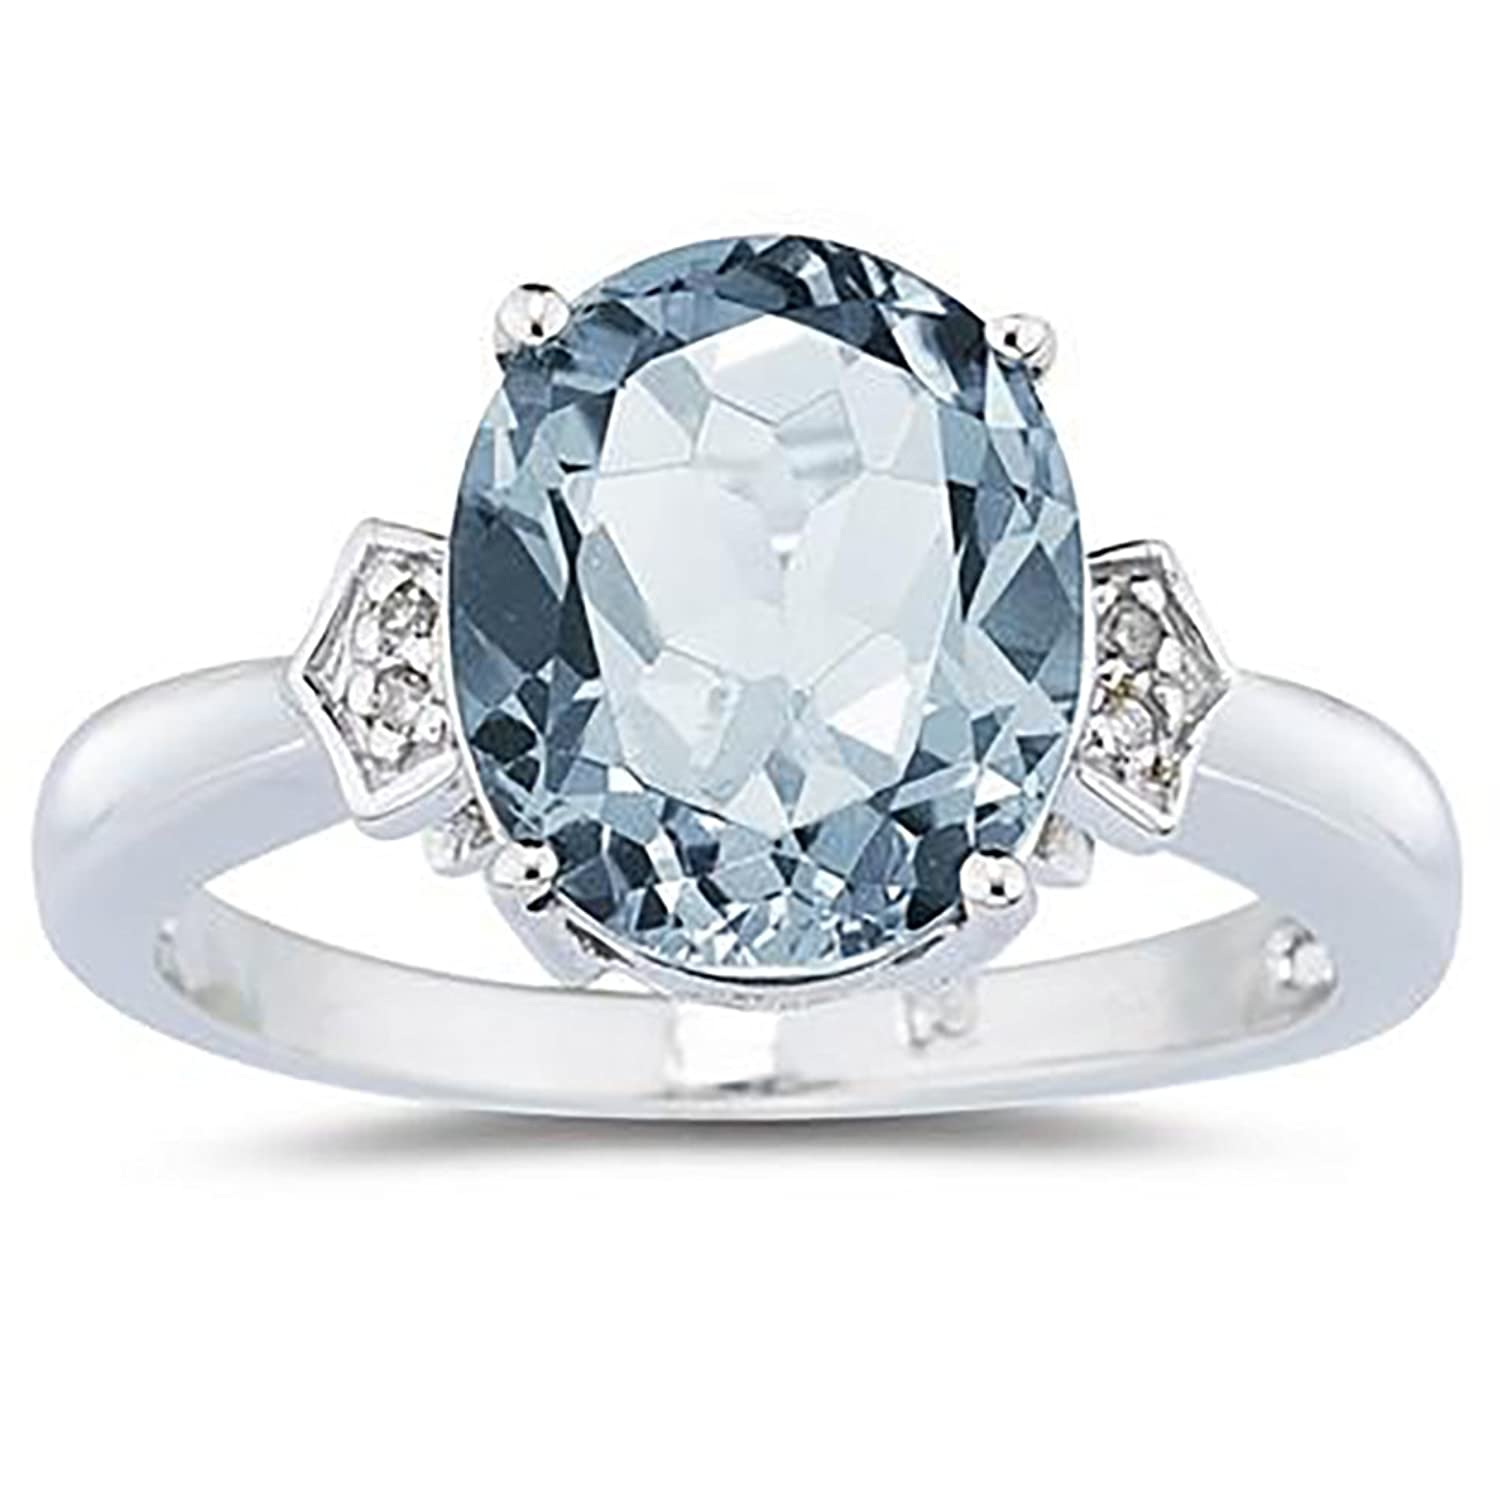 diamond levianr product centres dimond of blueberry tanzanite rings image ring charm levian